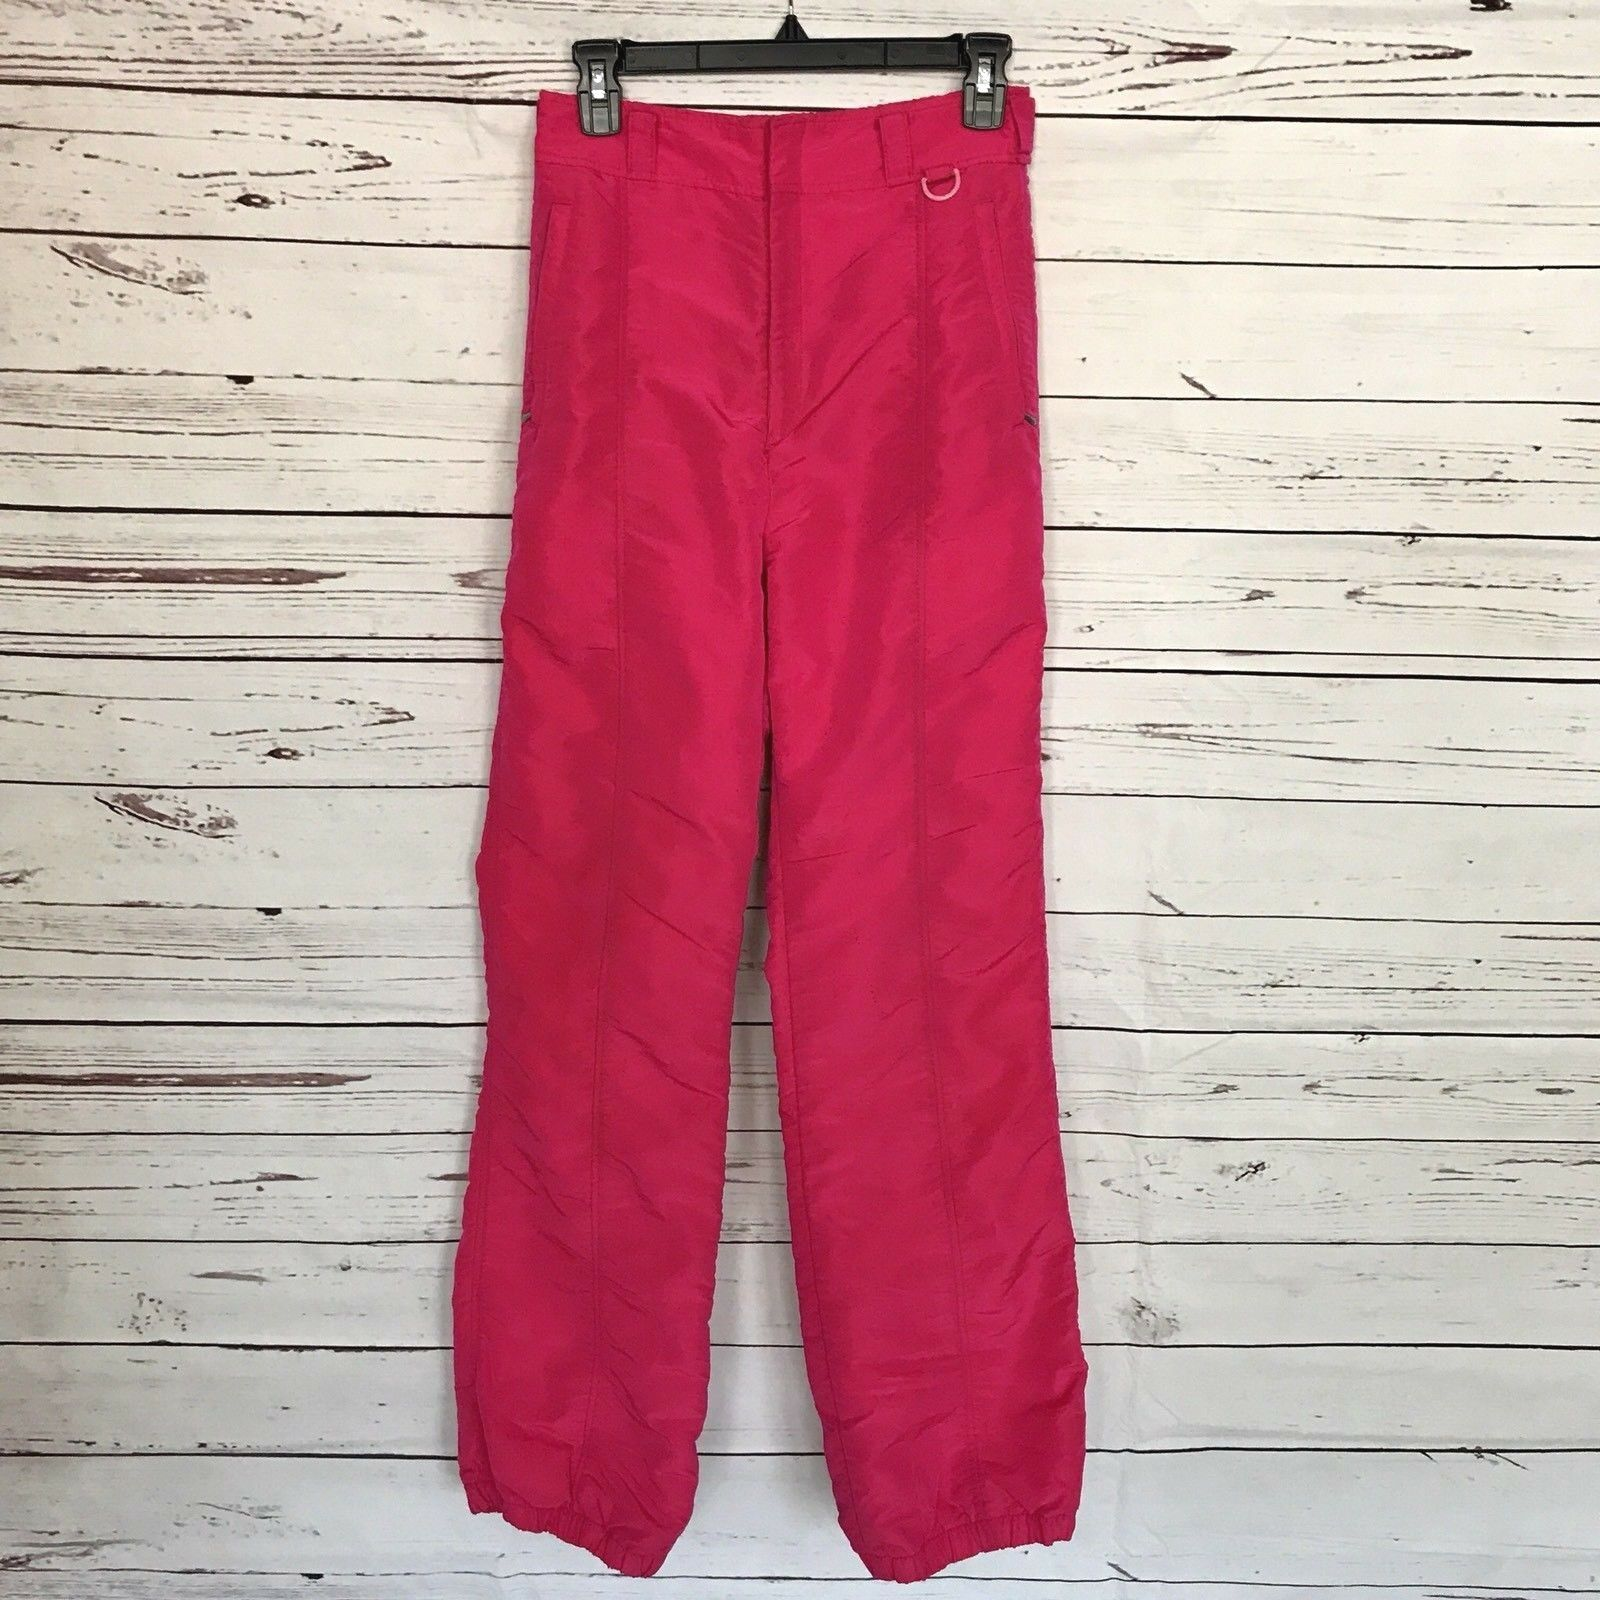 Nils Skiwear Women's Ski Pants Snow Thermal Insulated Pink Size 10